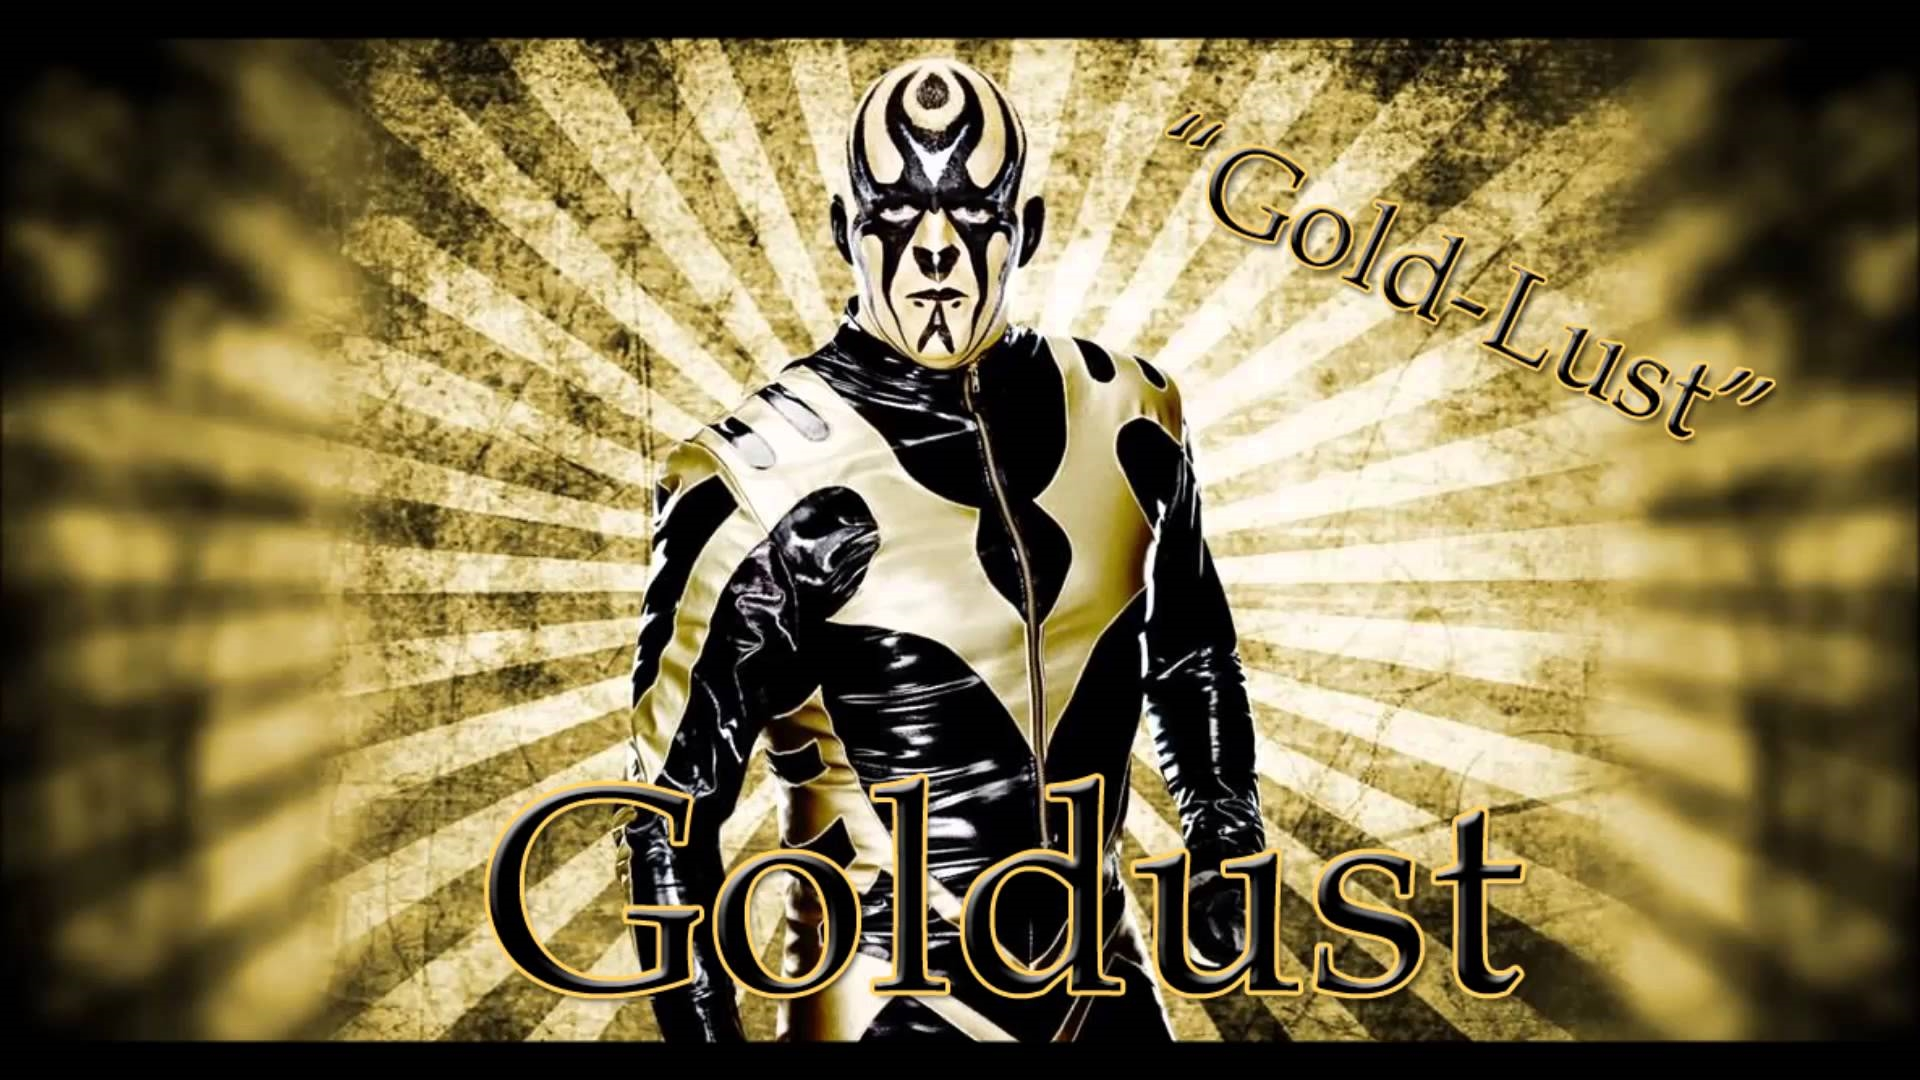 goldust wwe free desktop background